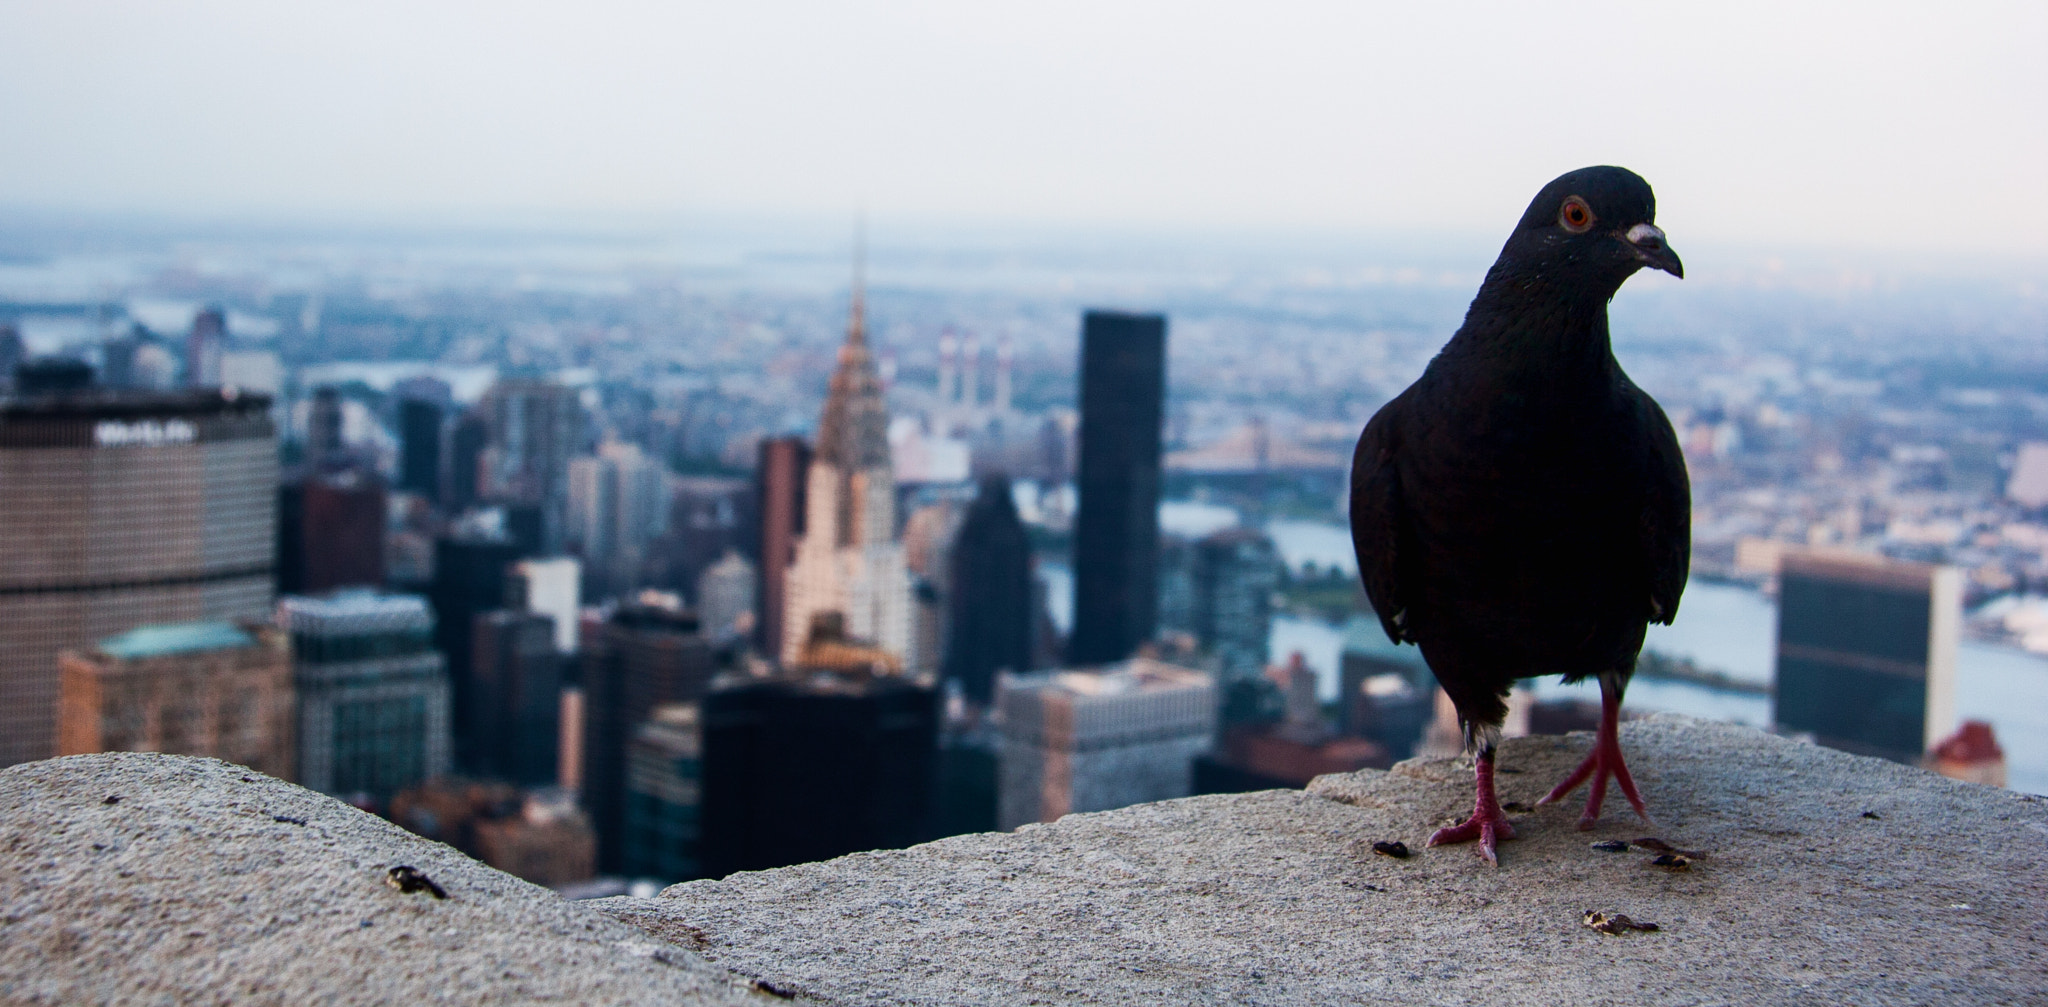 Photograph Pigeon Penthouse by Christopher Mayhew on 500px